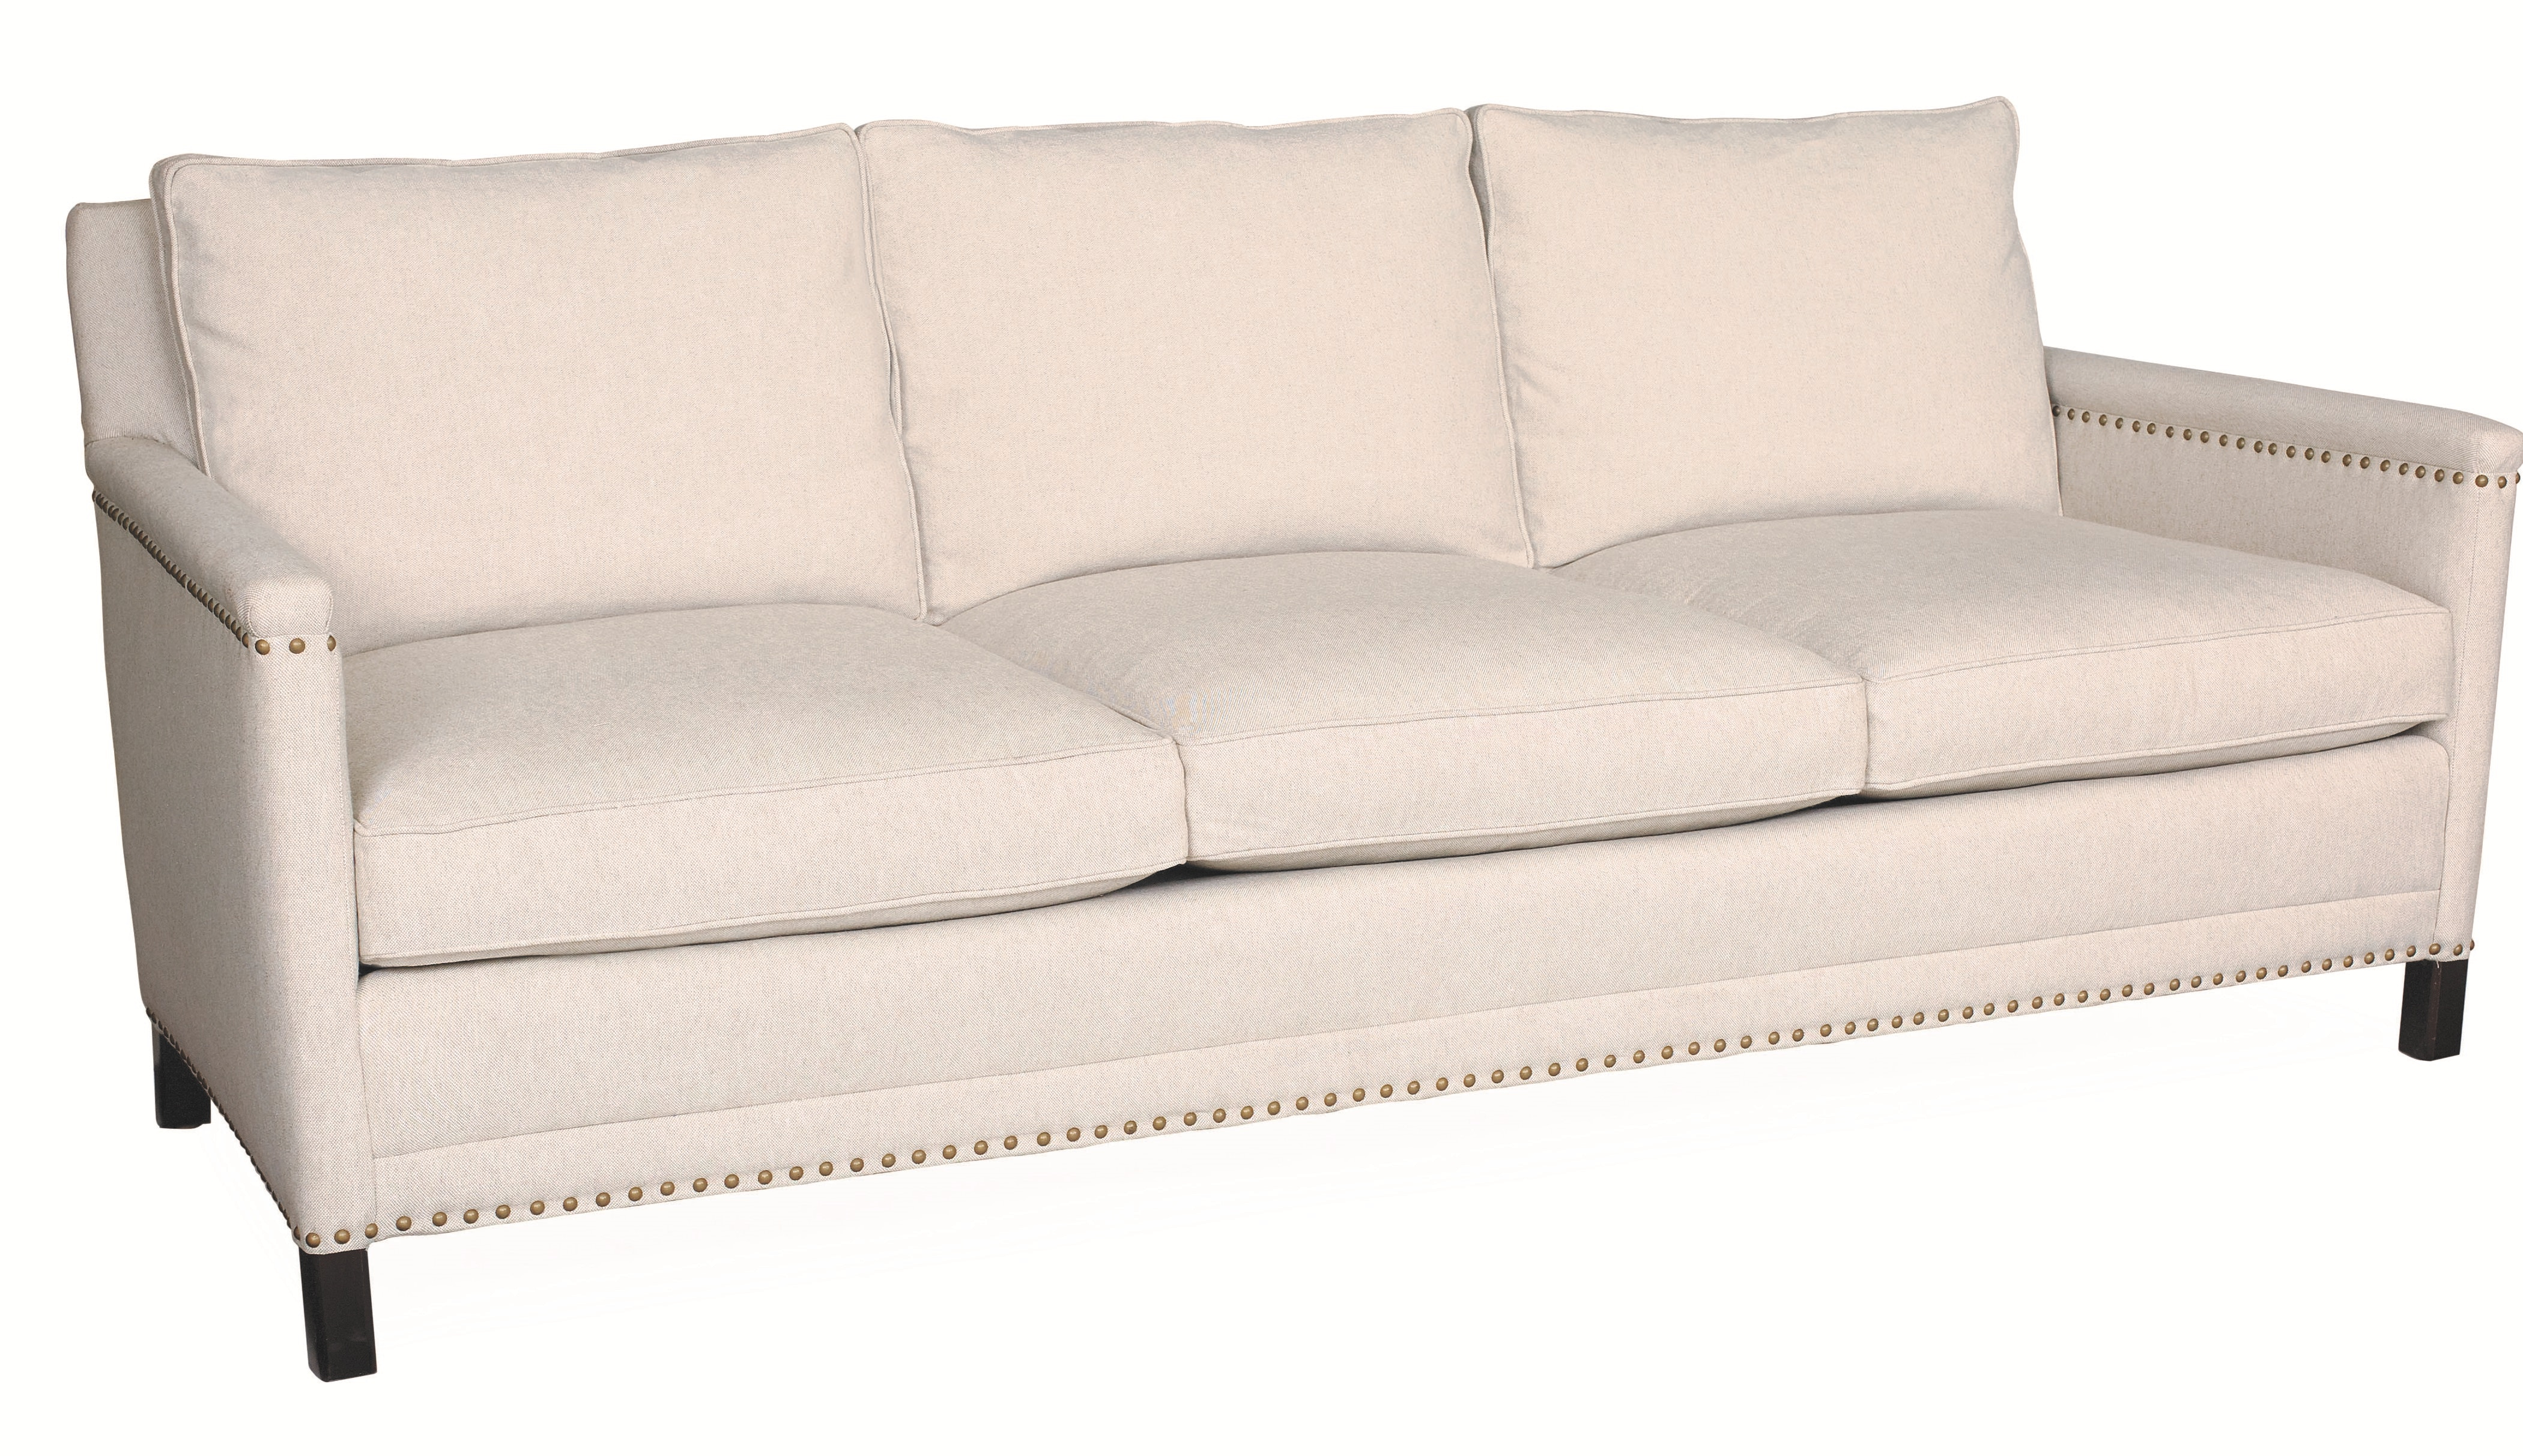 Lee Industries Sofa 1935 03